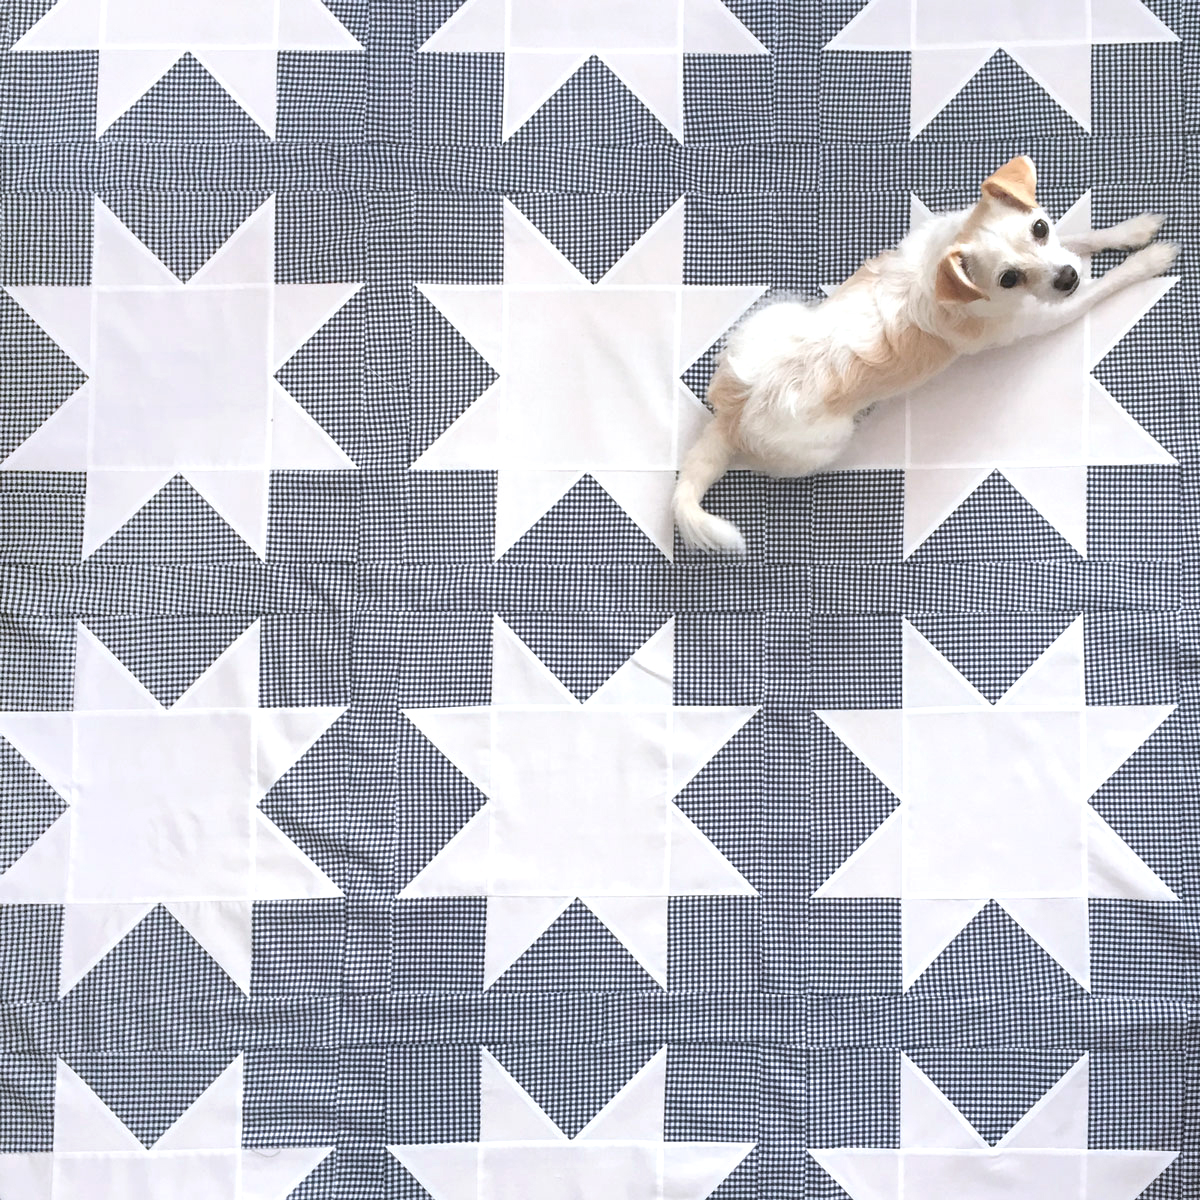 "Free Sawtooth Star Quilt Pattern. A beginner-friendly sawtooth quilt block tutorial. Included is a sawtooth star conversion chart to make 4"", 8"", 12"", 16"" blocks. Suzy Quilts 